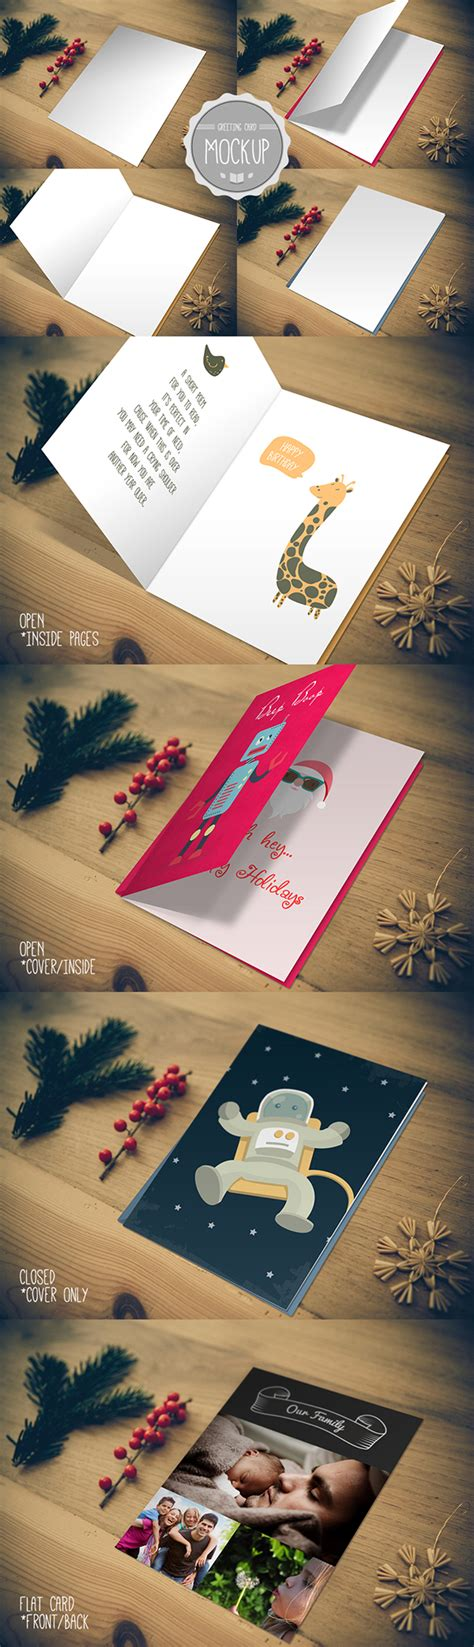 photoshop greeting card template psd greeting card mockup photoshop psd template on behance